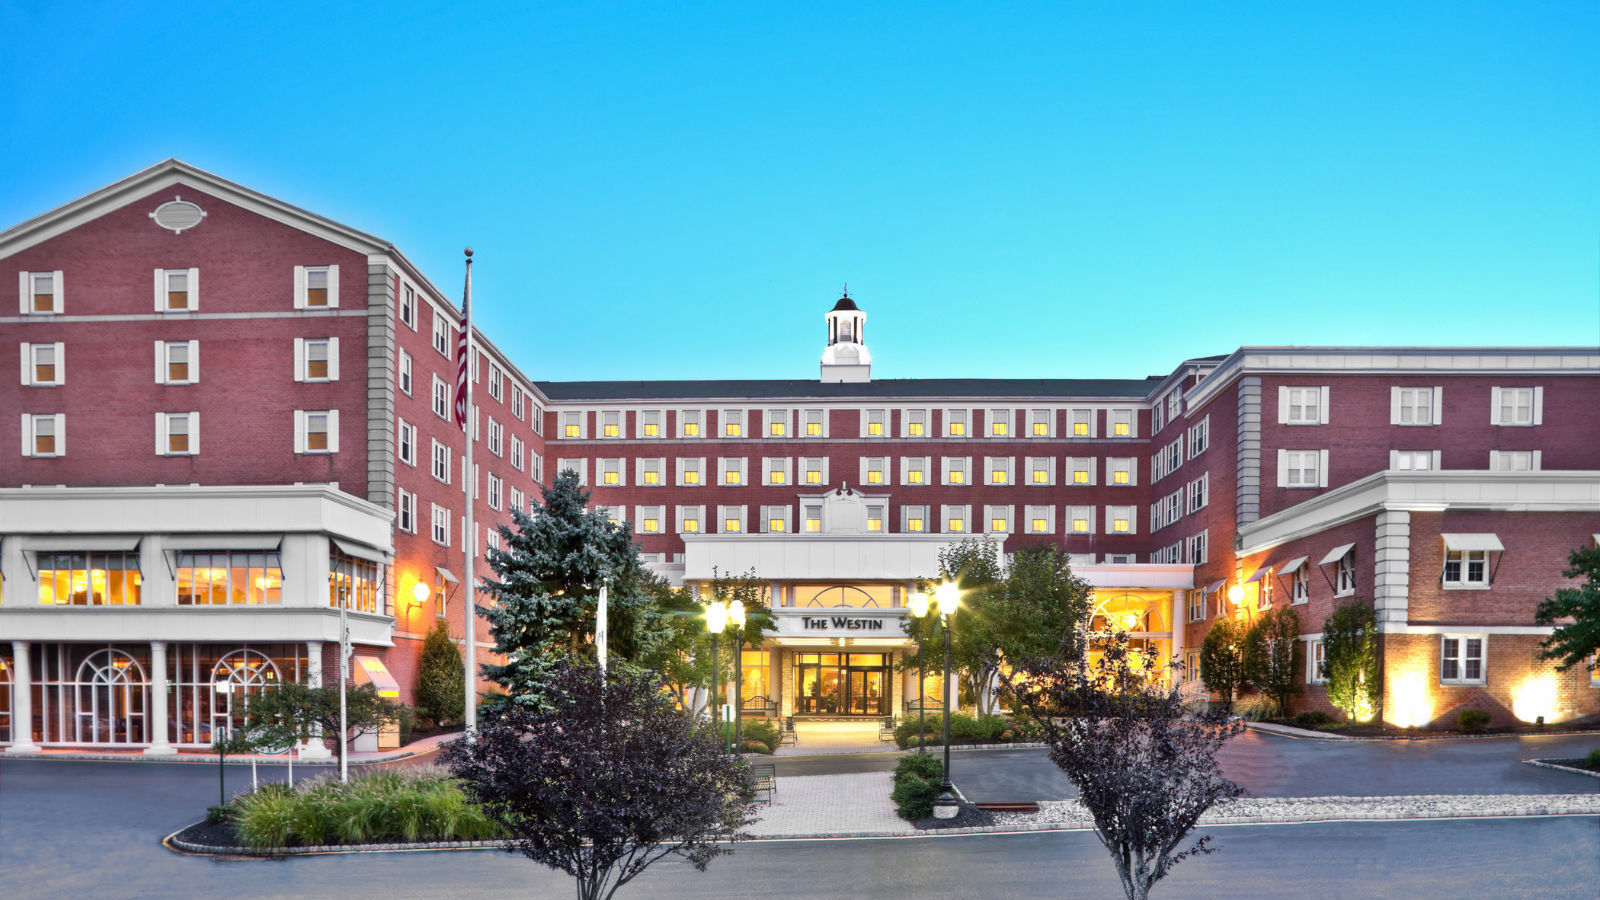 Morristown Nj Wedding Venues The Westin Governor Morris | Autos Post